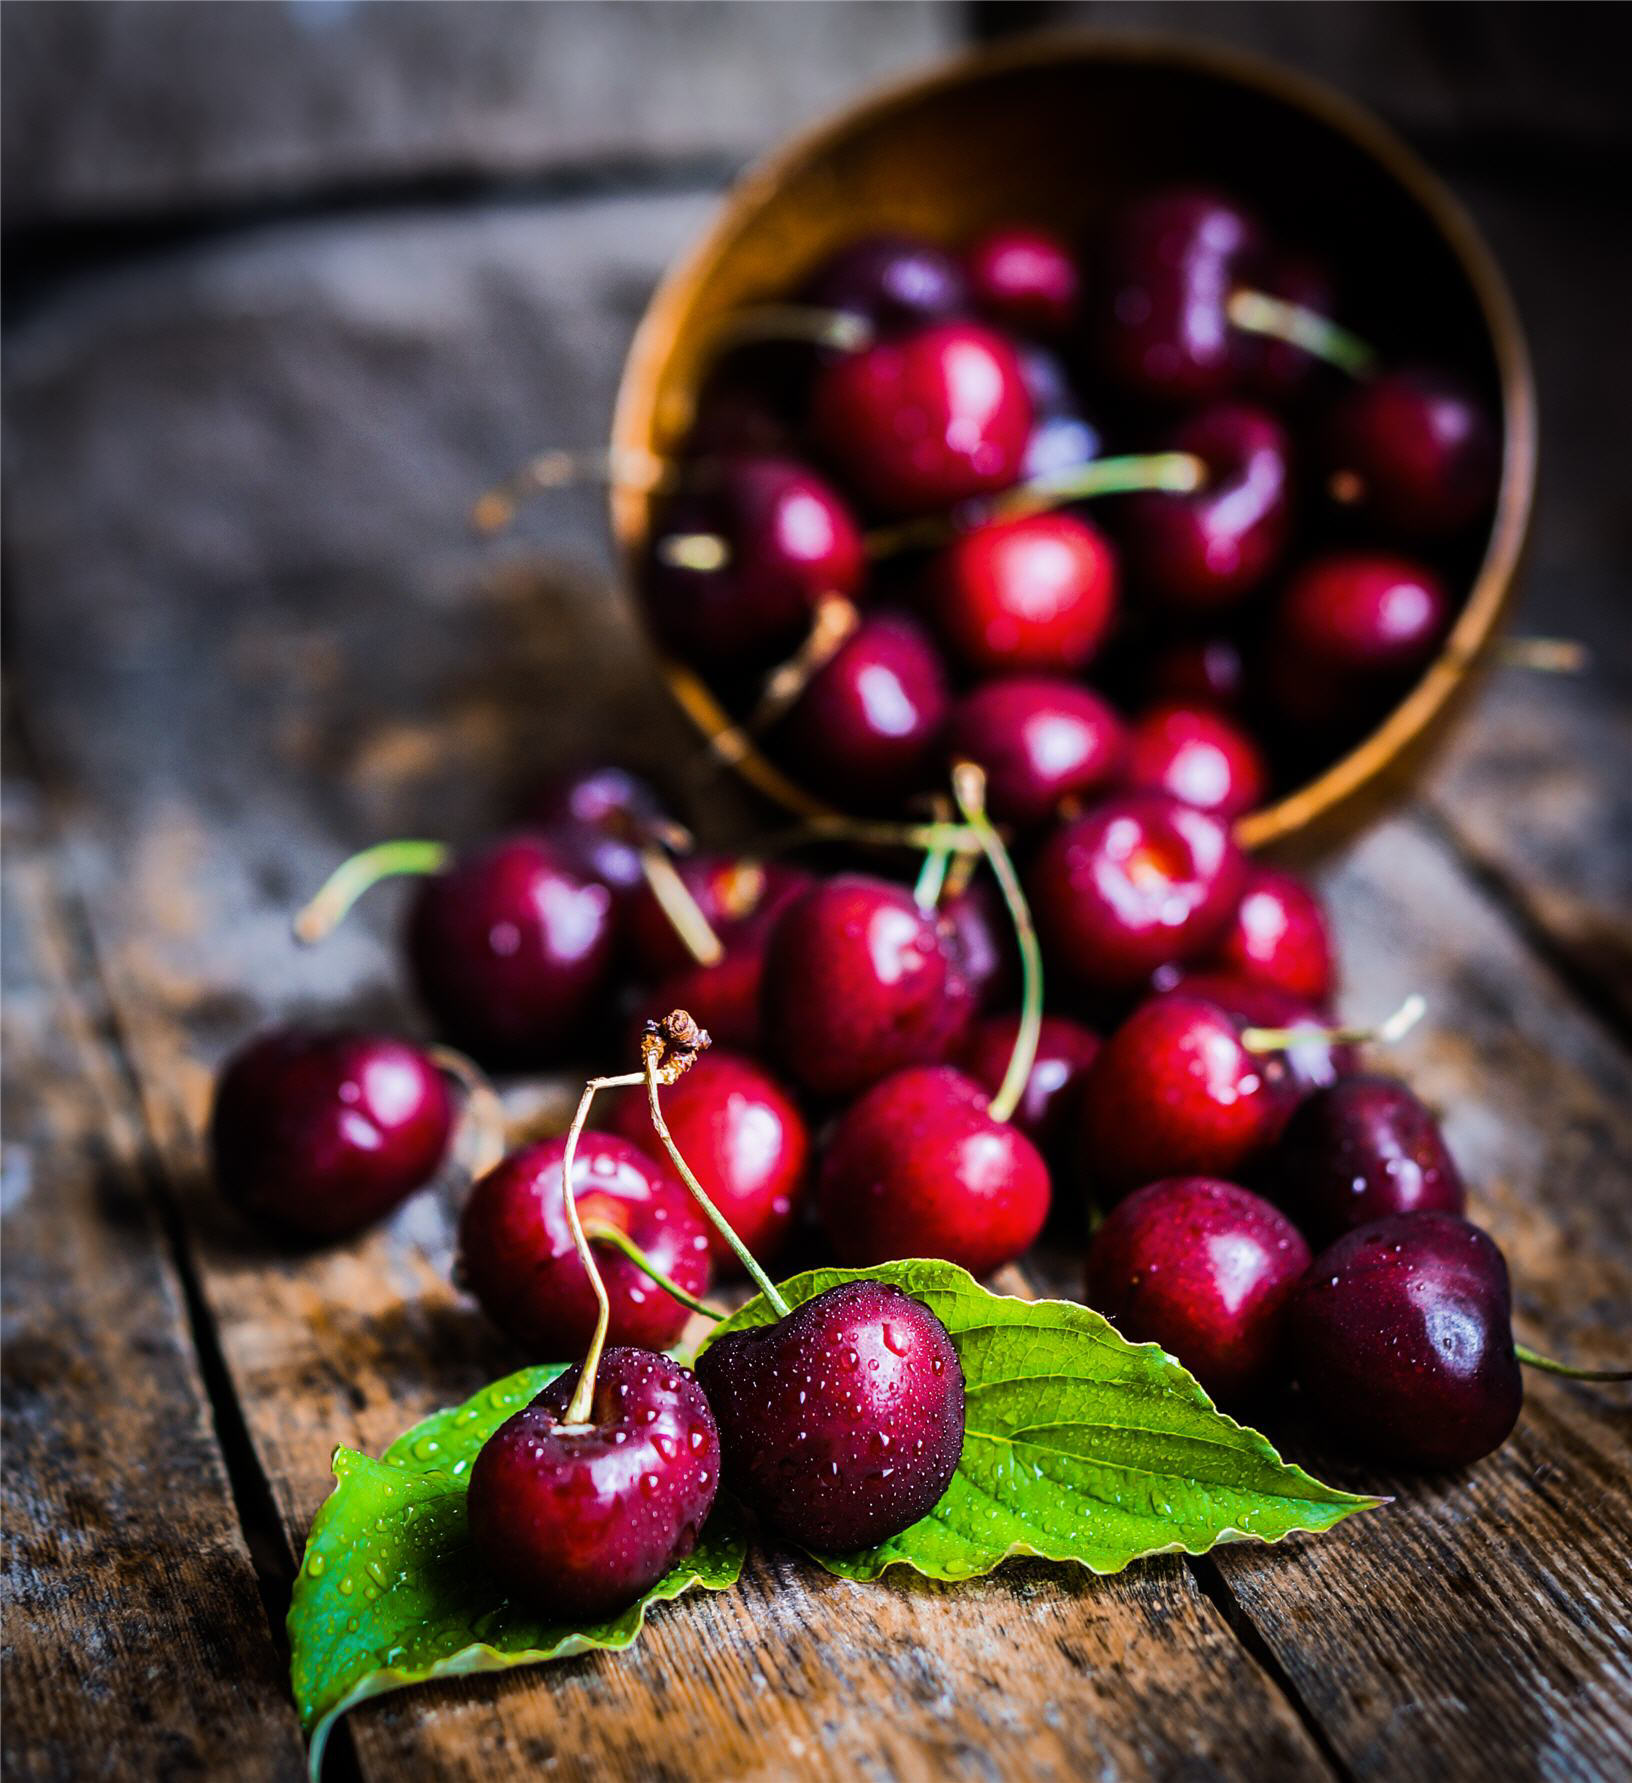 Rustic fruits, cherries